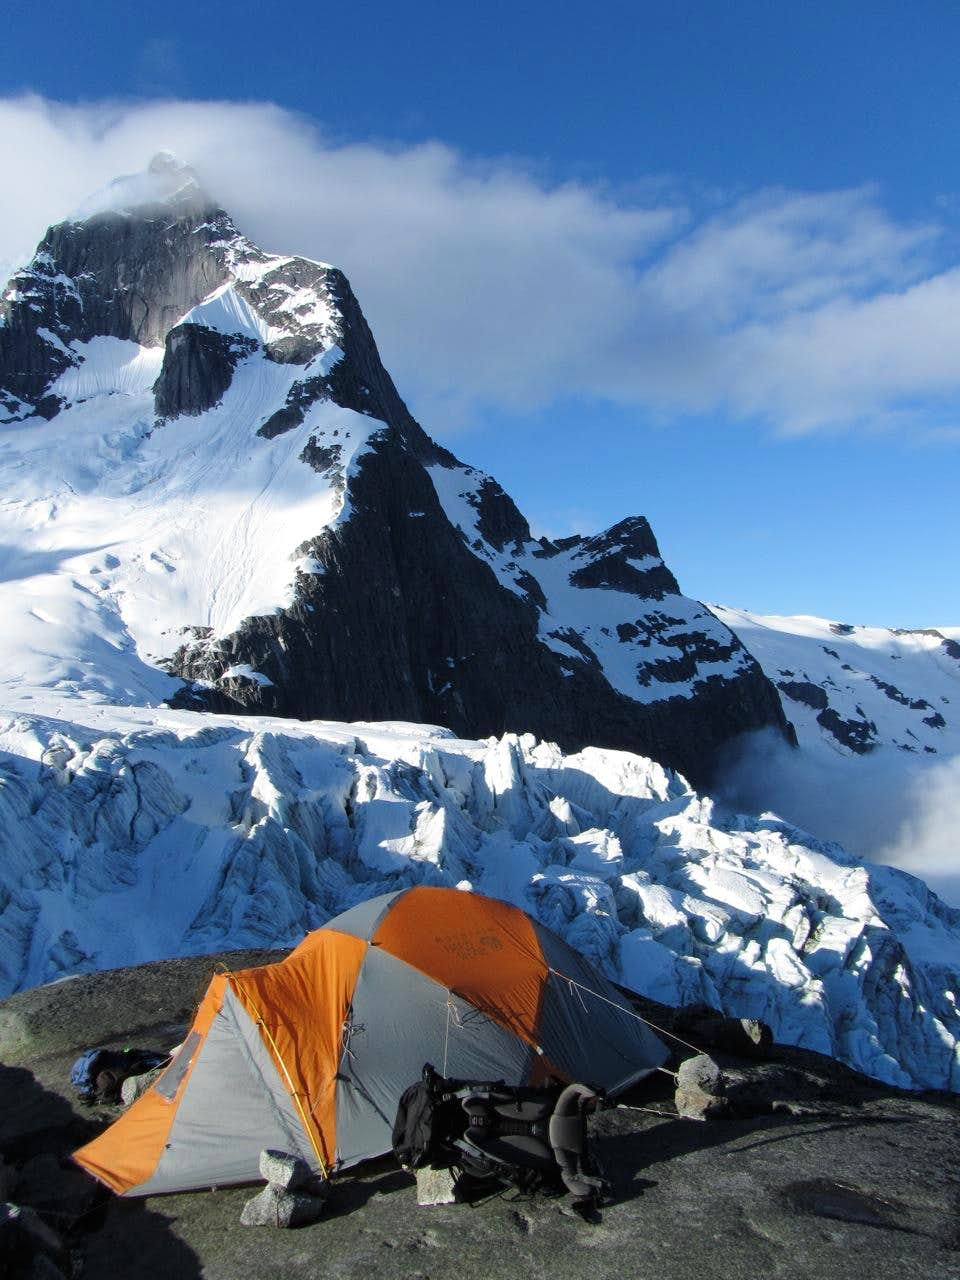 Our Camp under Mt. Bute